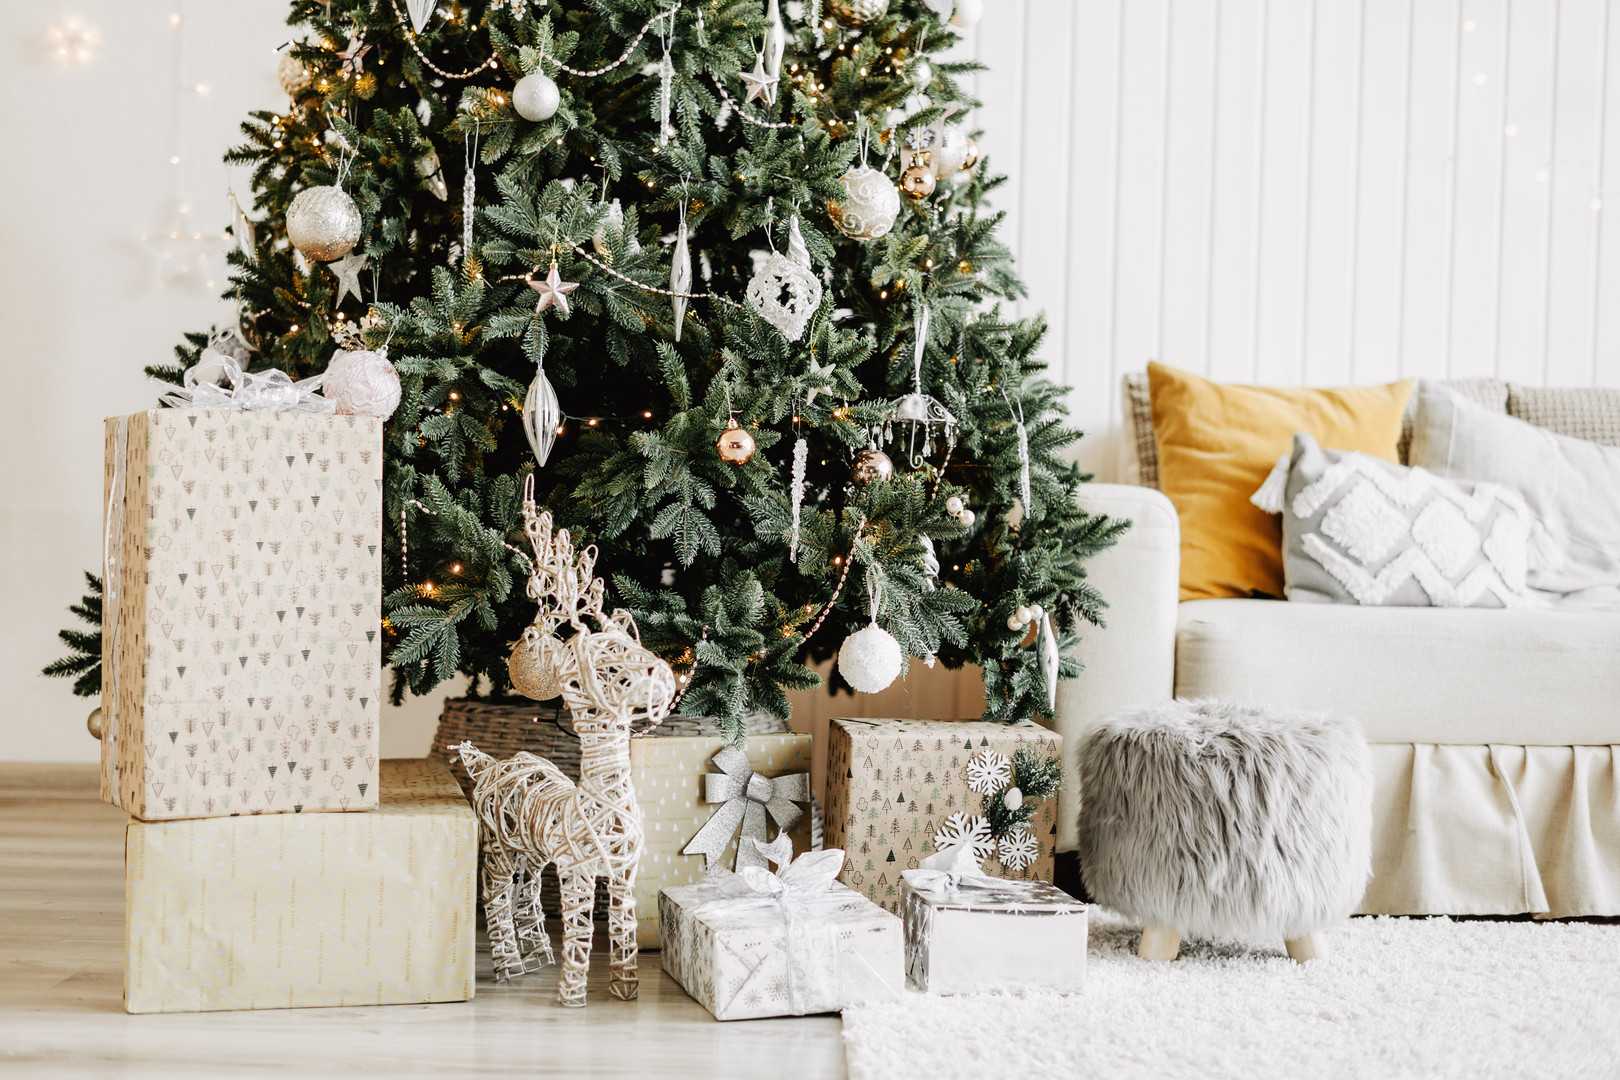 decorated-christmas-room-with-gifts.jpg